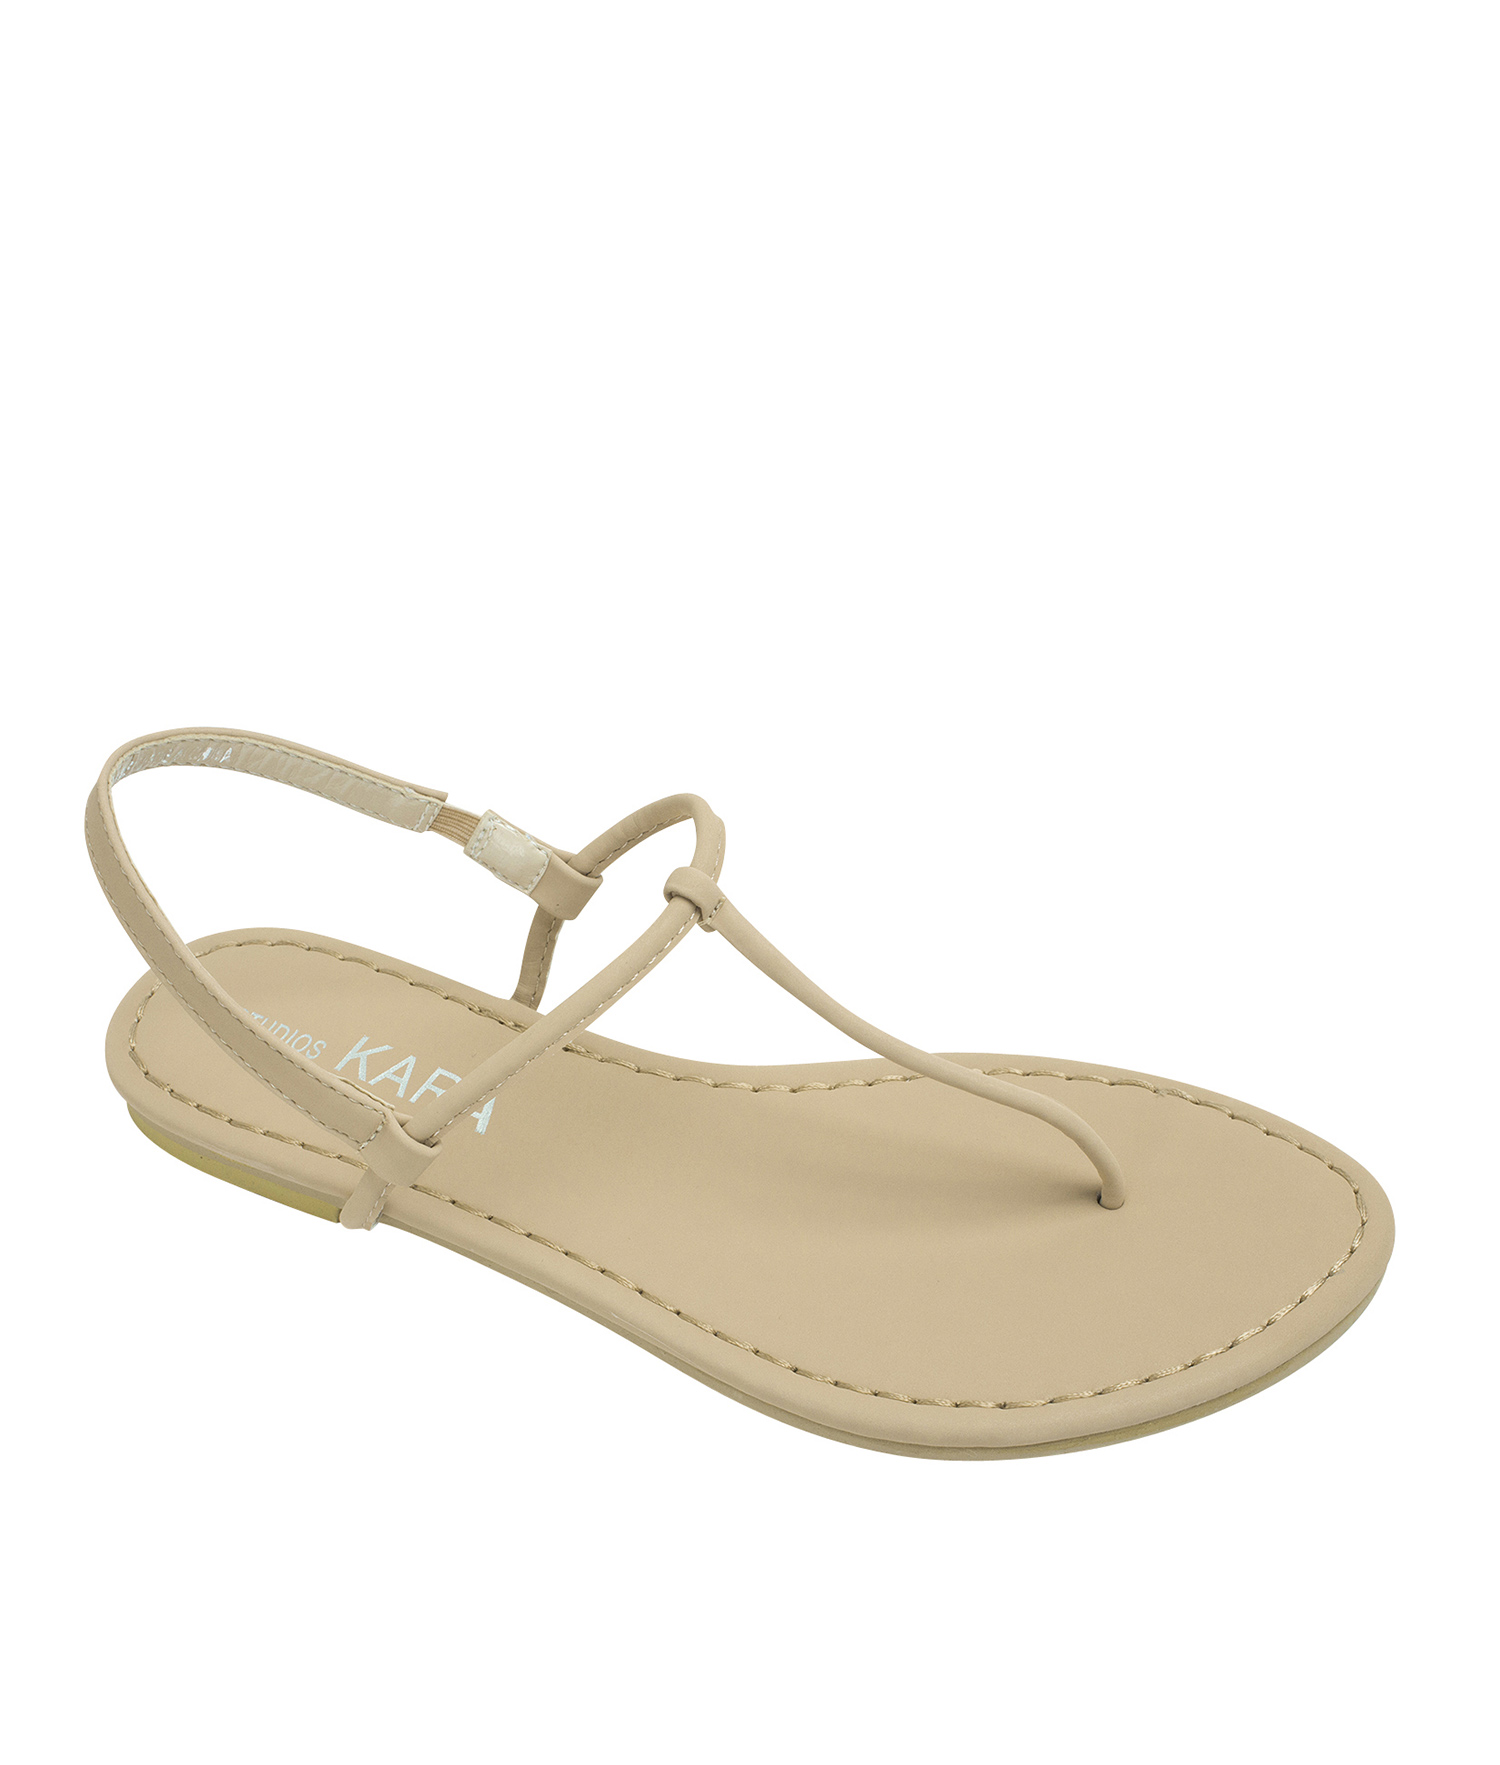 sandals cheap up to 34 discounts